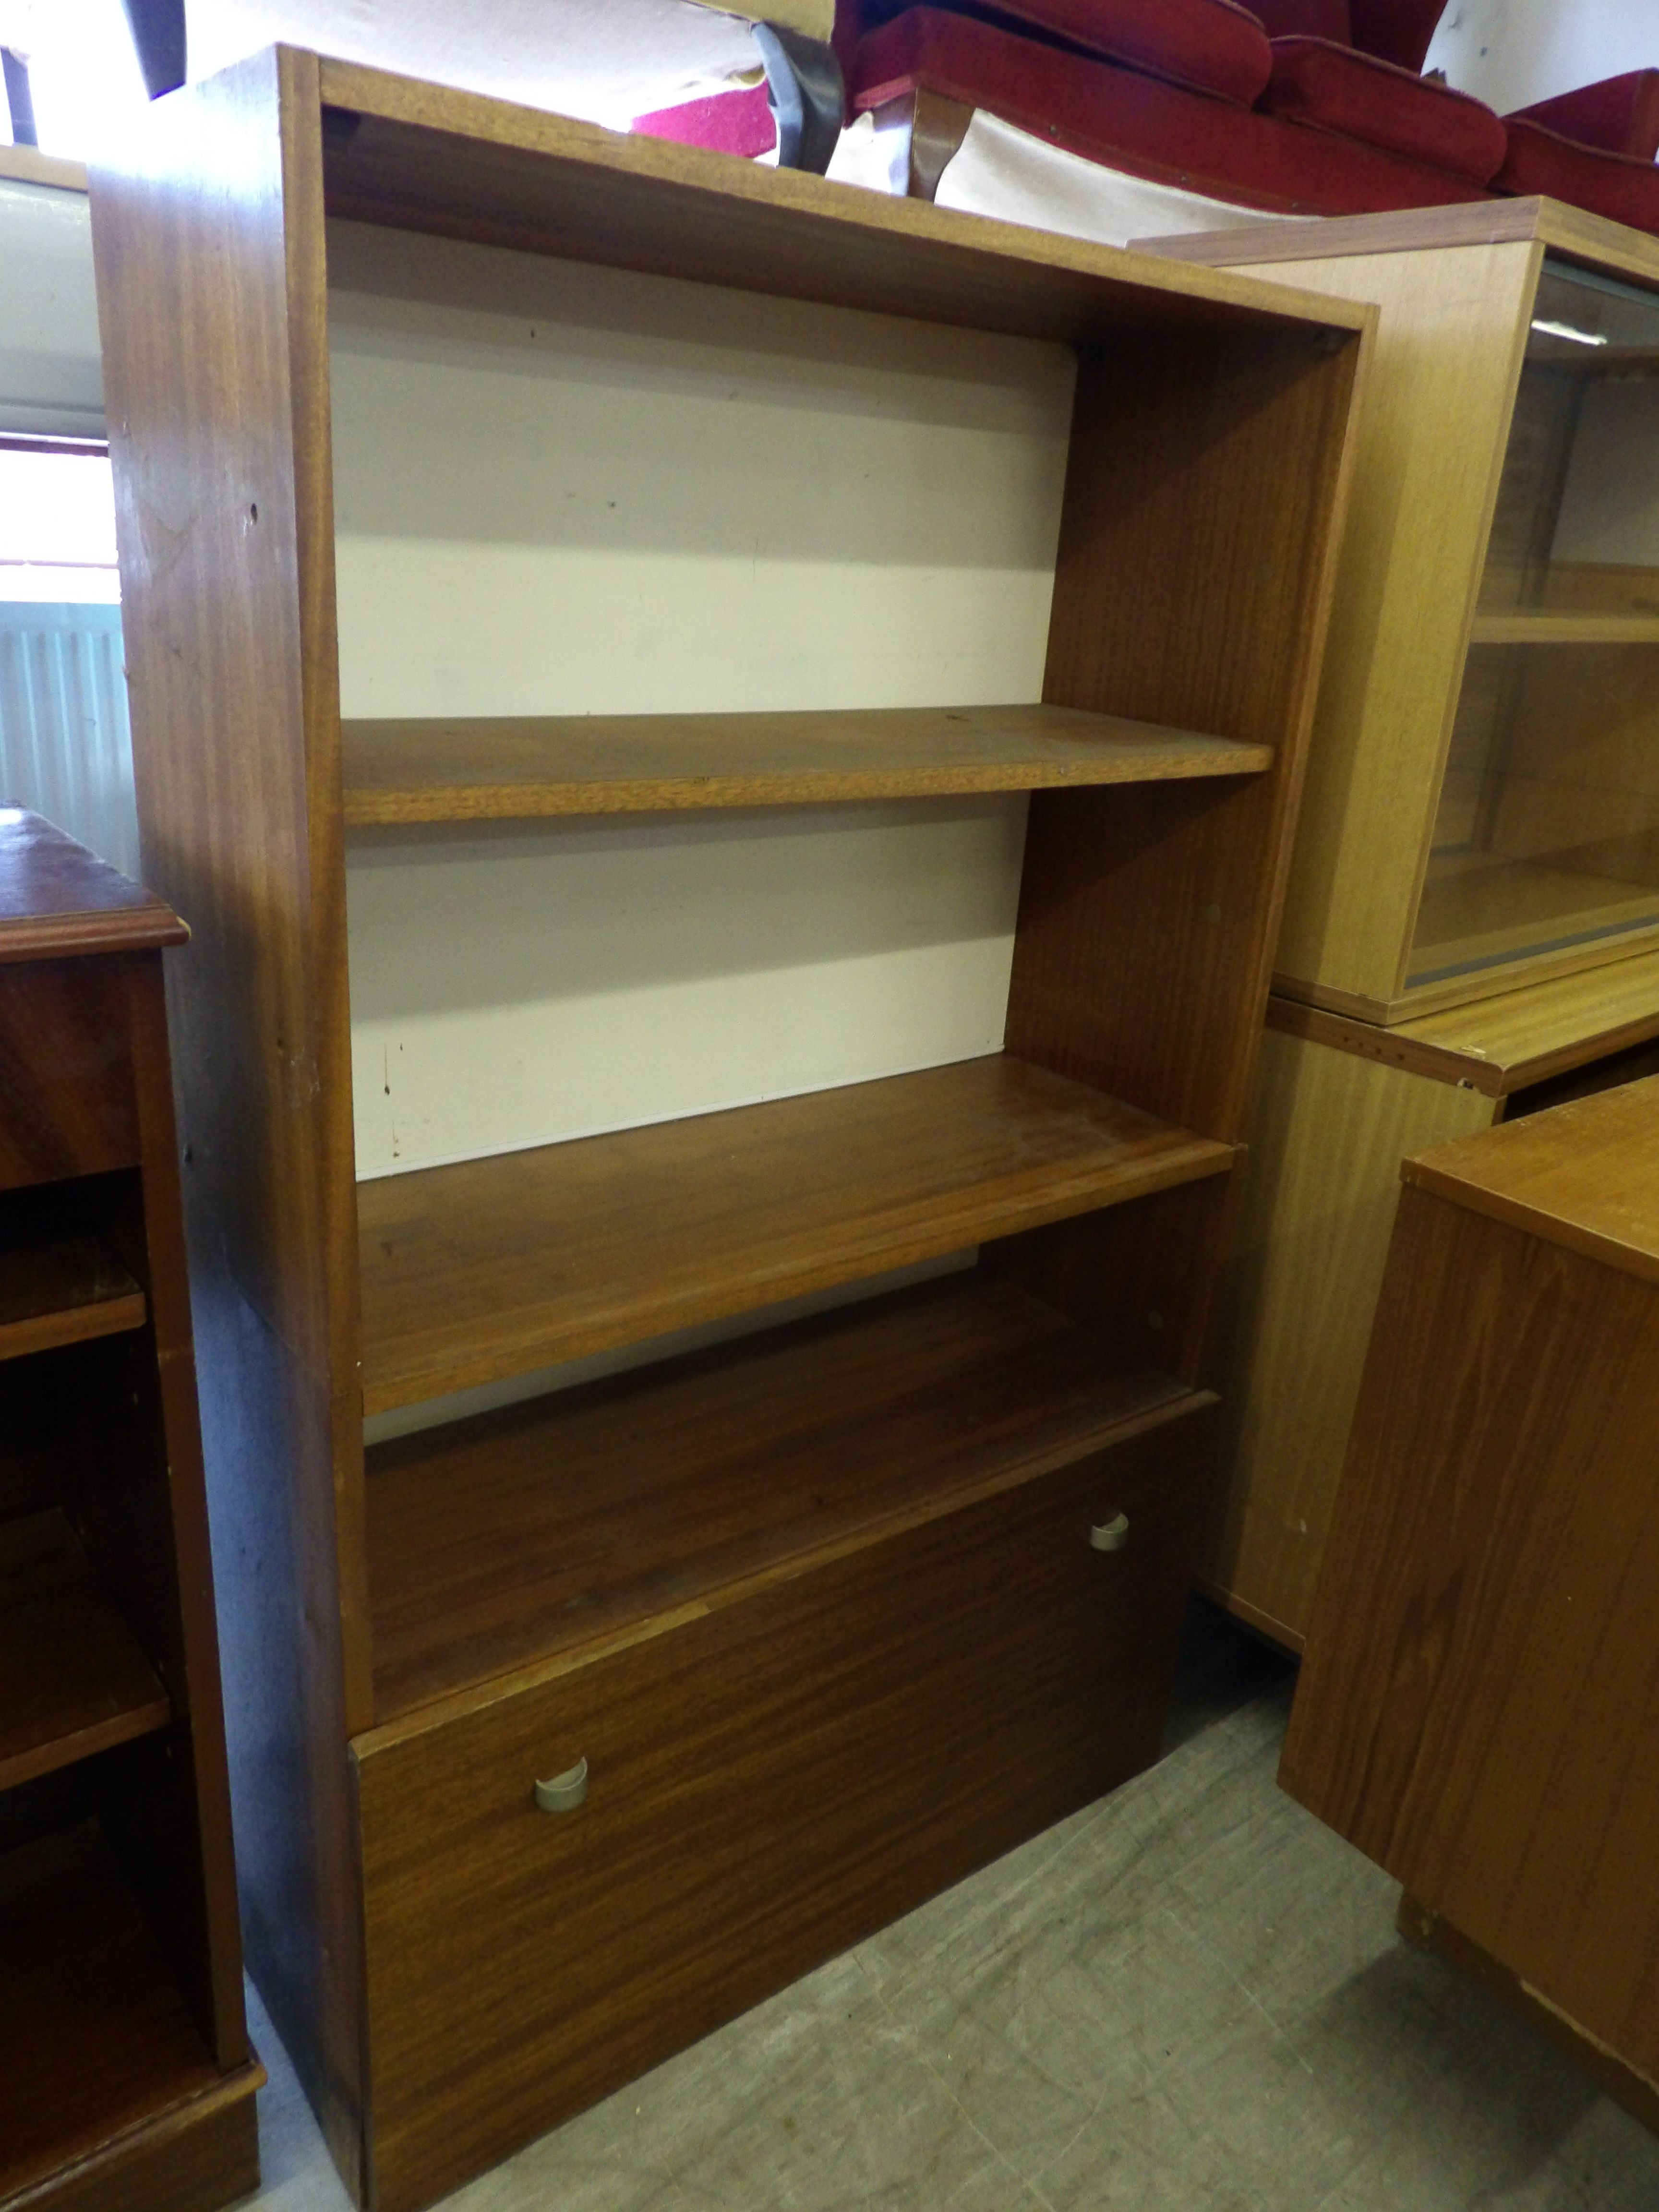 Shelves With Cupboard At The Bottom In RGF's Showroom was £5 now £4 (PC676) Further Discounts Available Instore On Selected Items